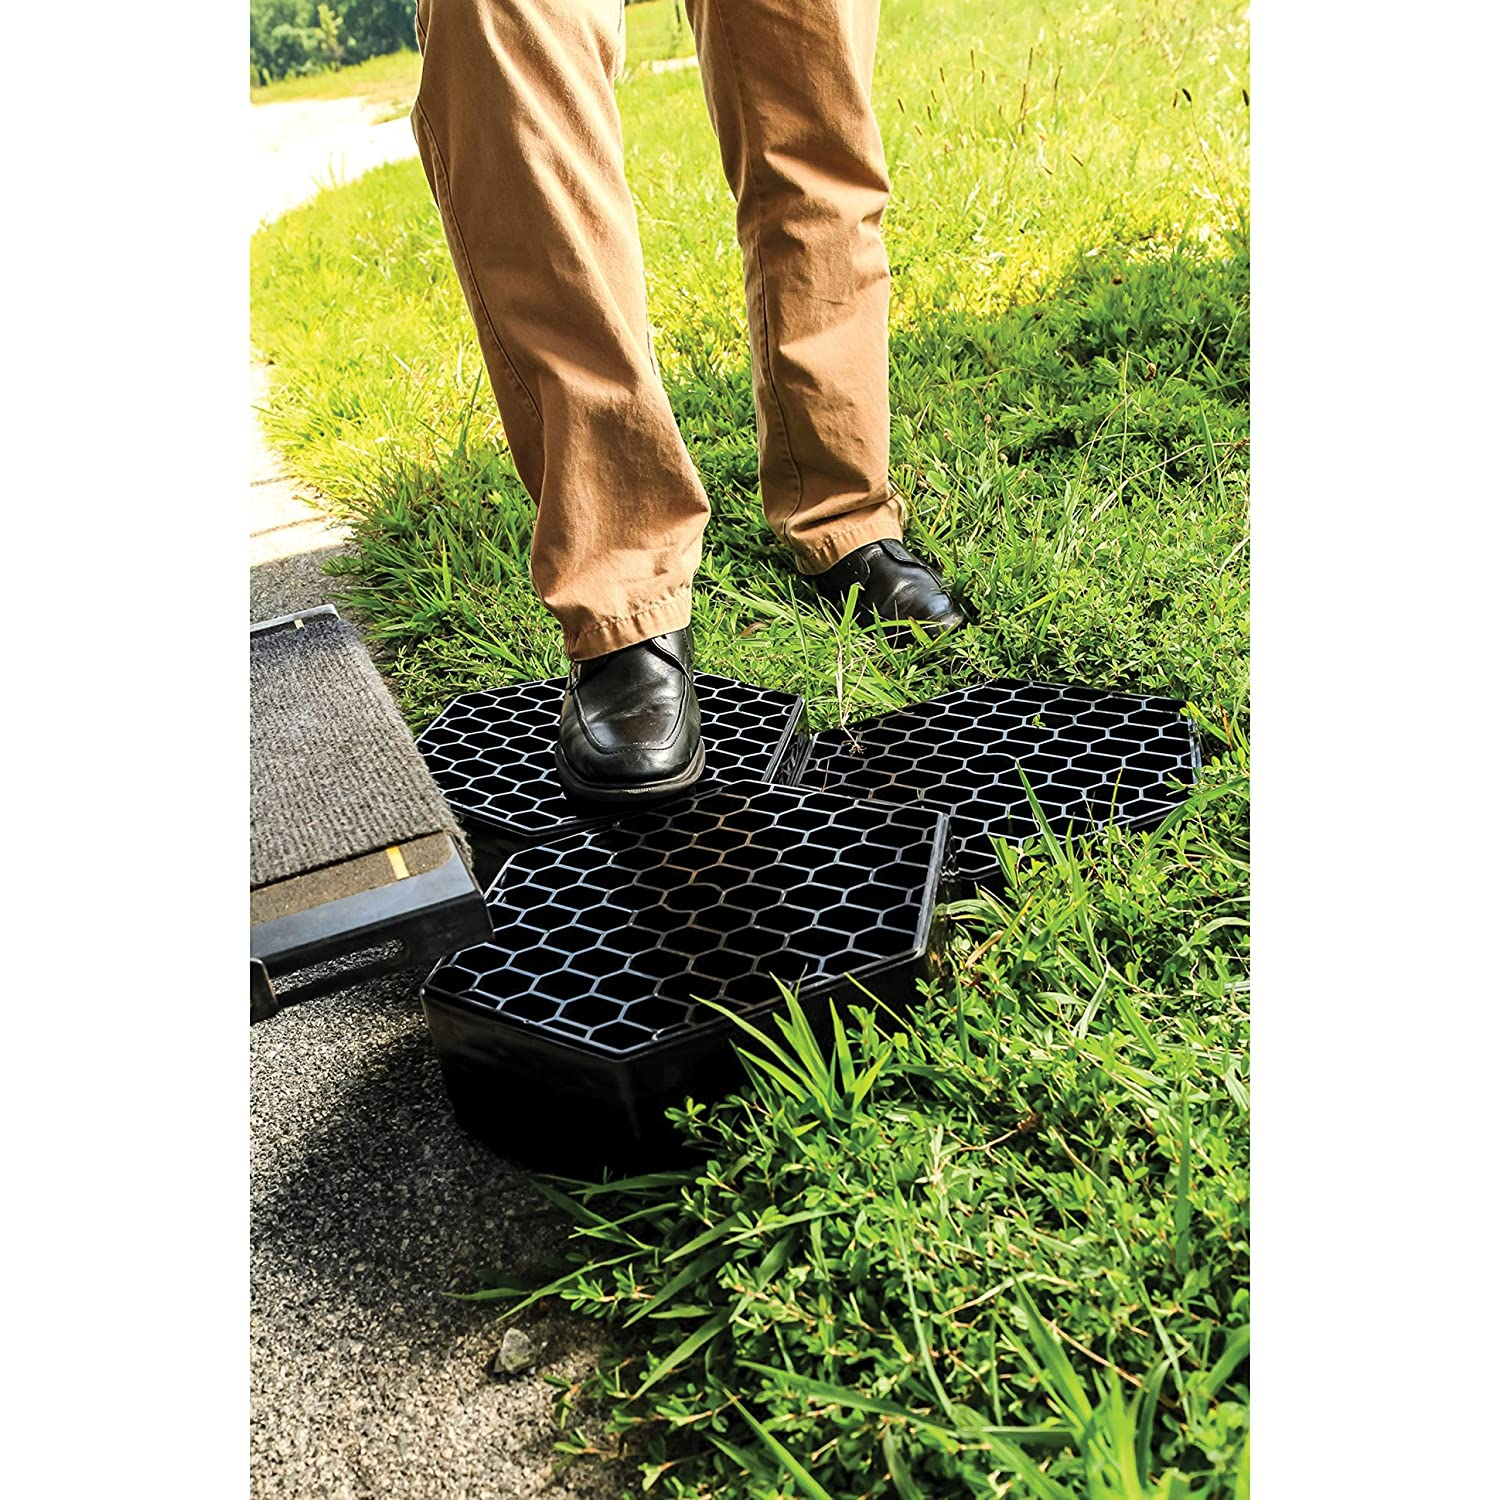 10-Pack Ideal Providing A Solid Stepping Surface Keeping Shoes Clean Green Camco Fastpath Portable Stepping Stones